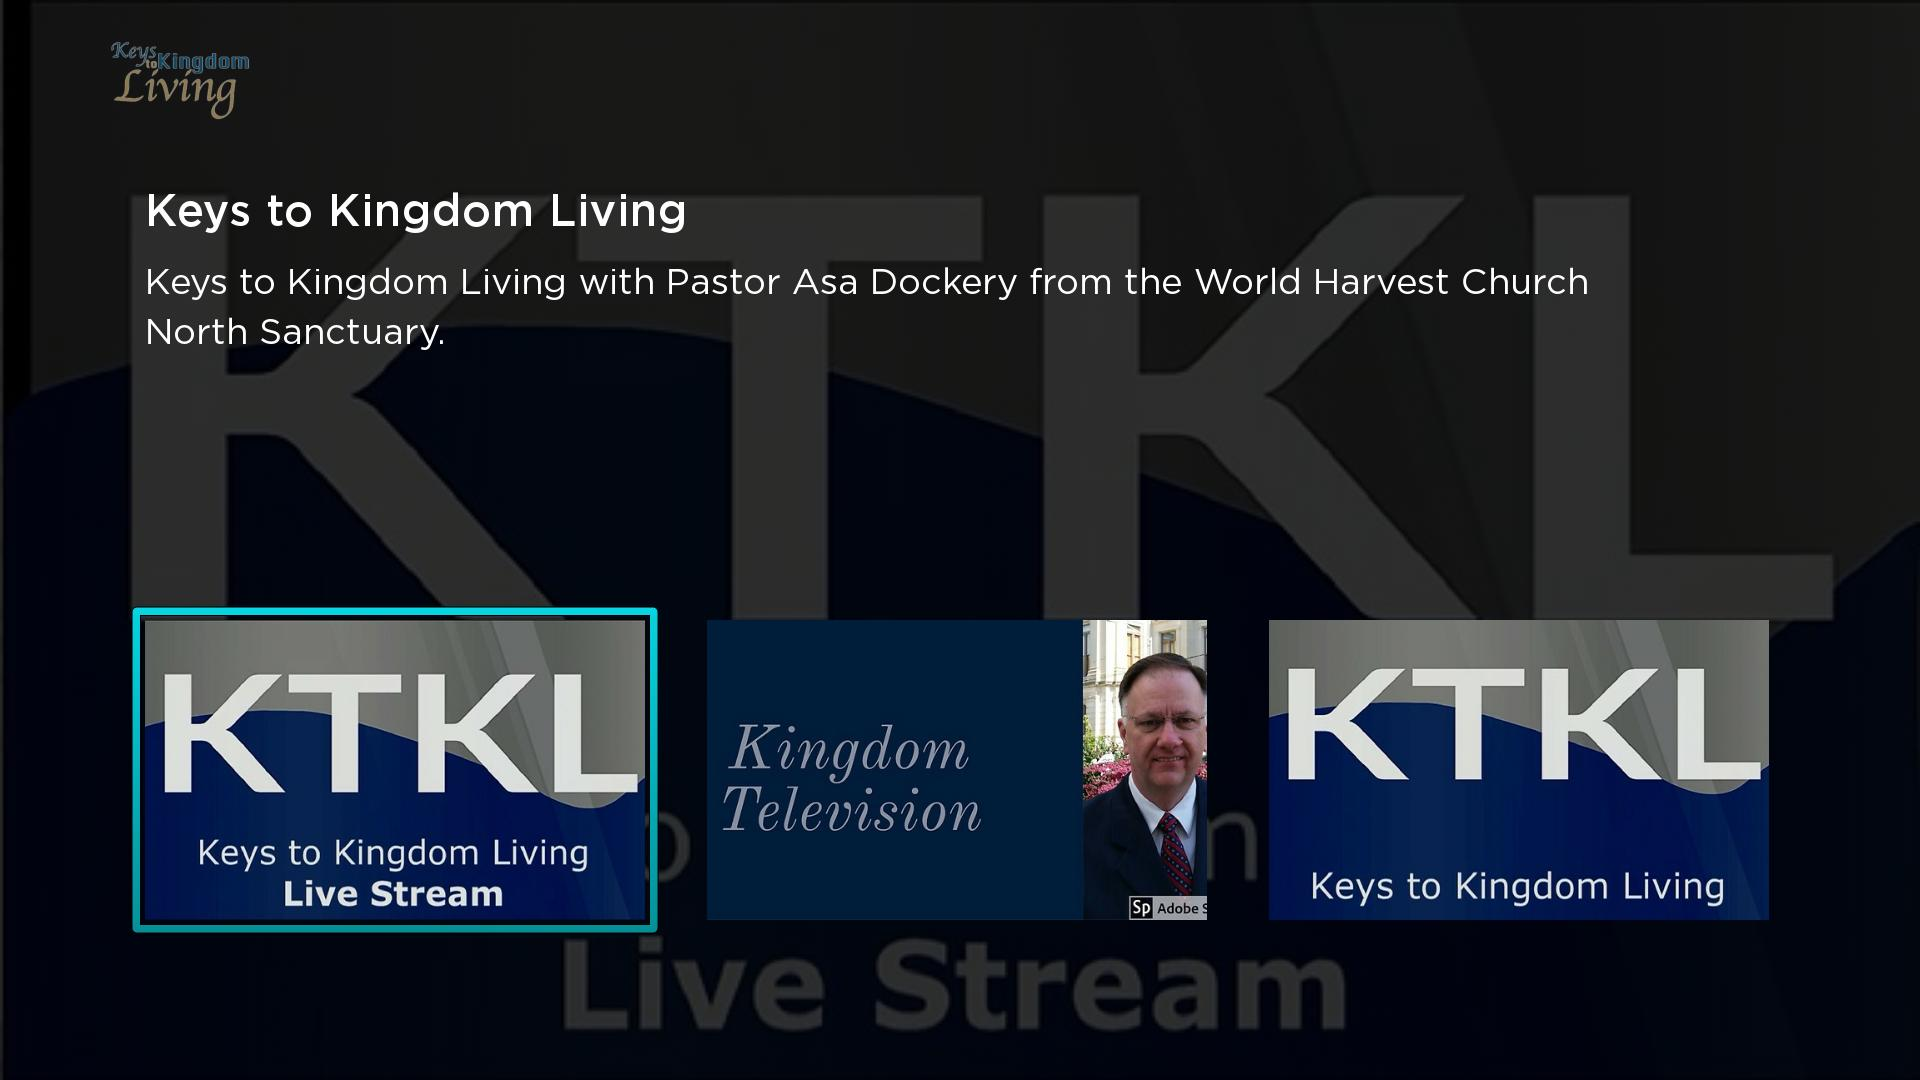 Keys to Kingdom Living Screenshot 001